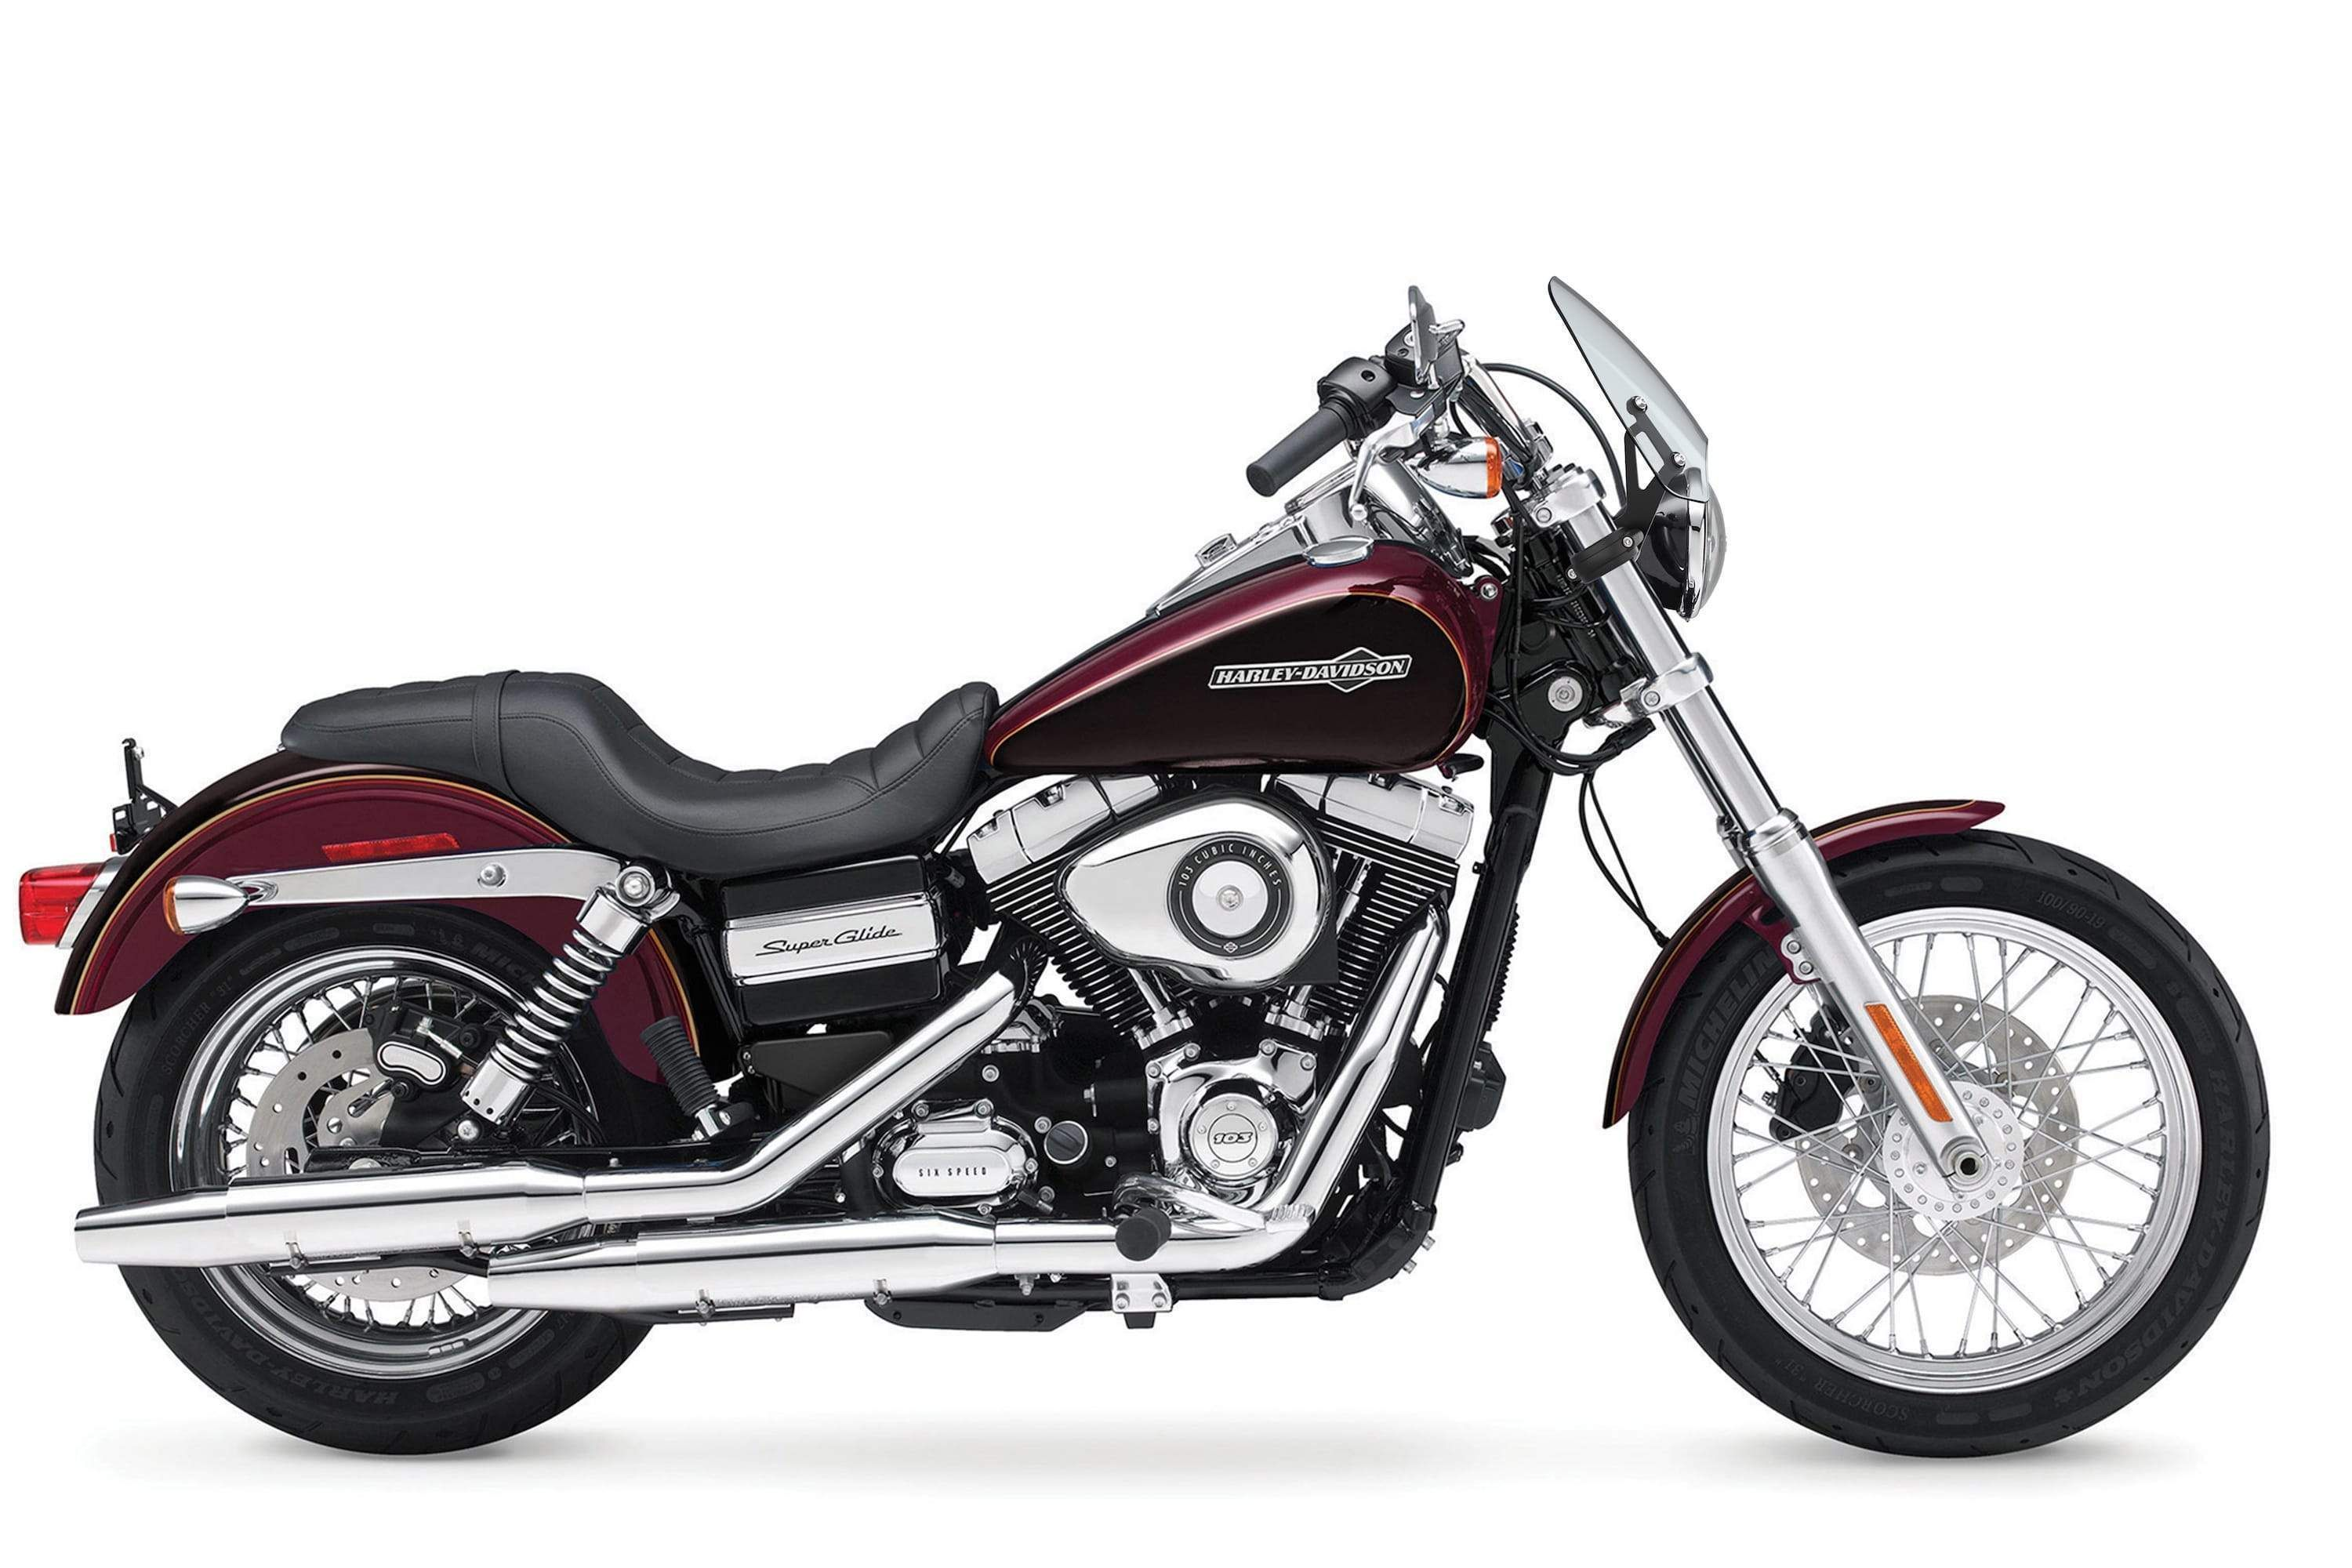 Harley-Davidson FXD Dyna Classic